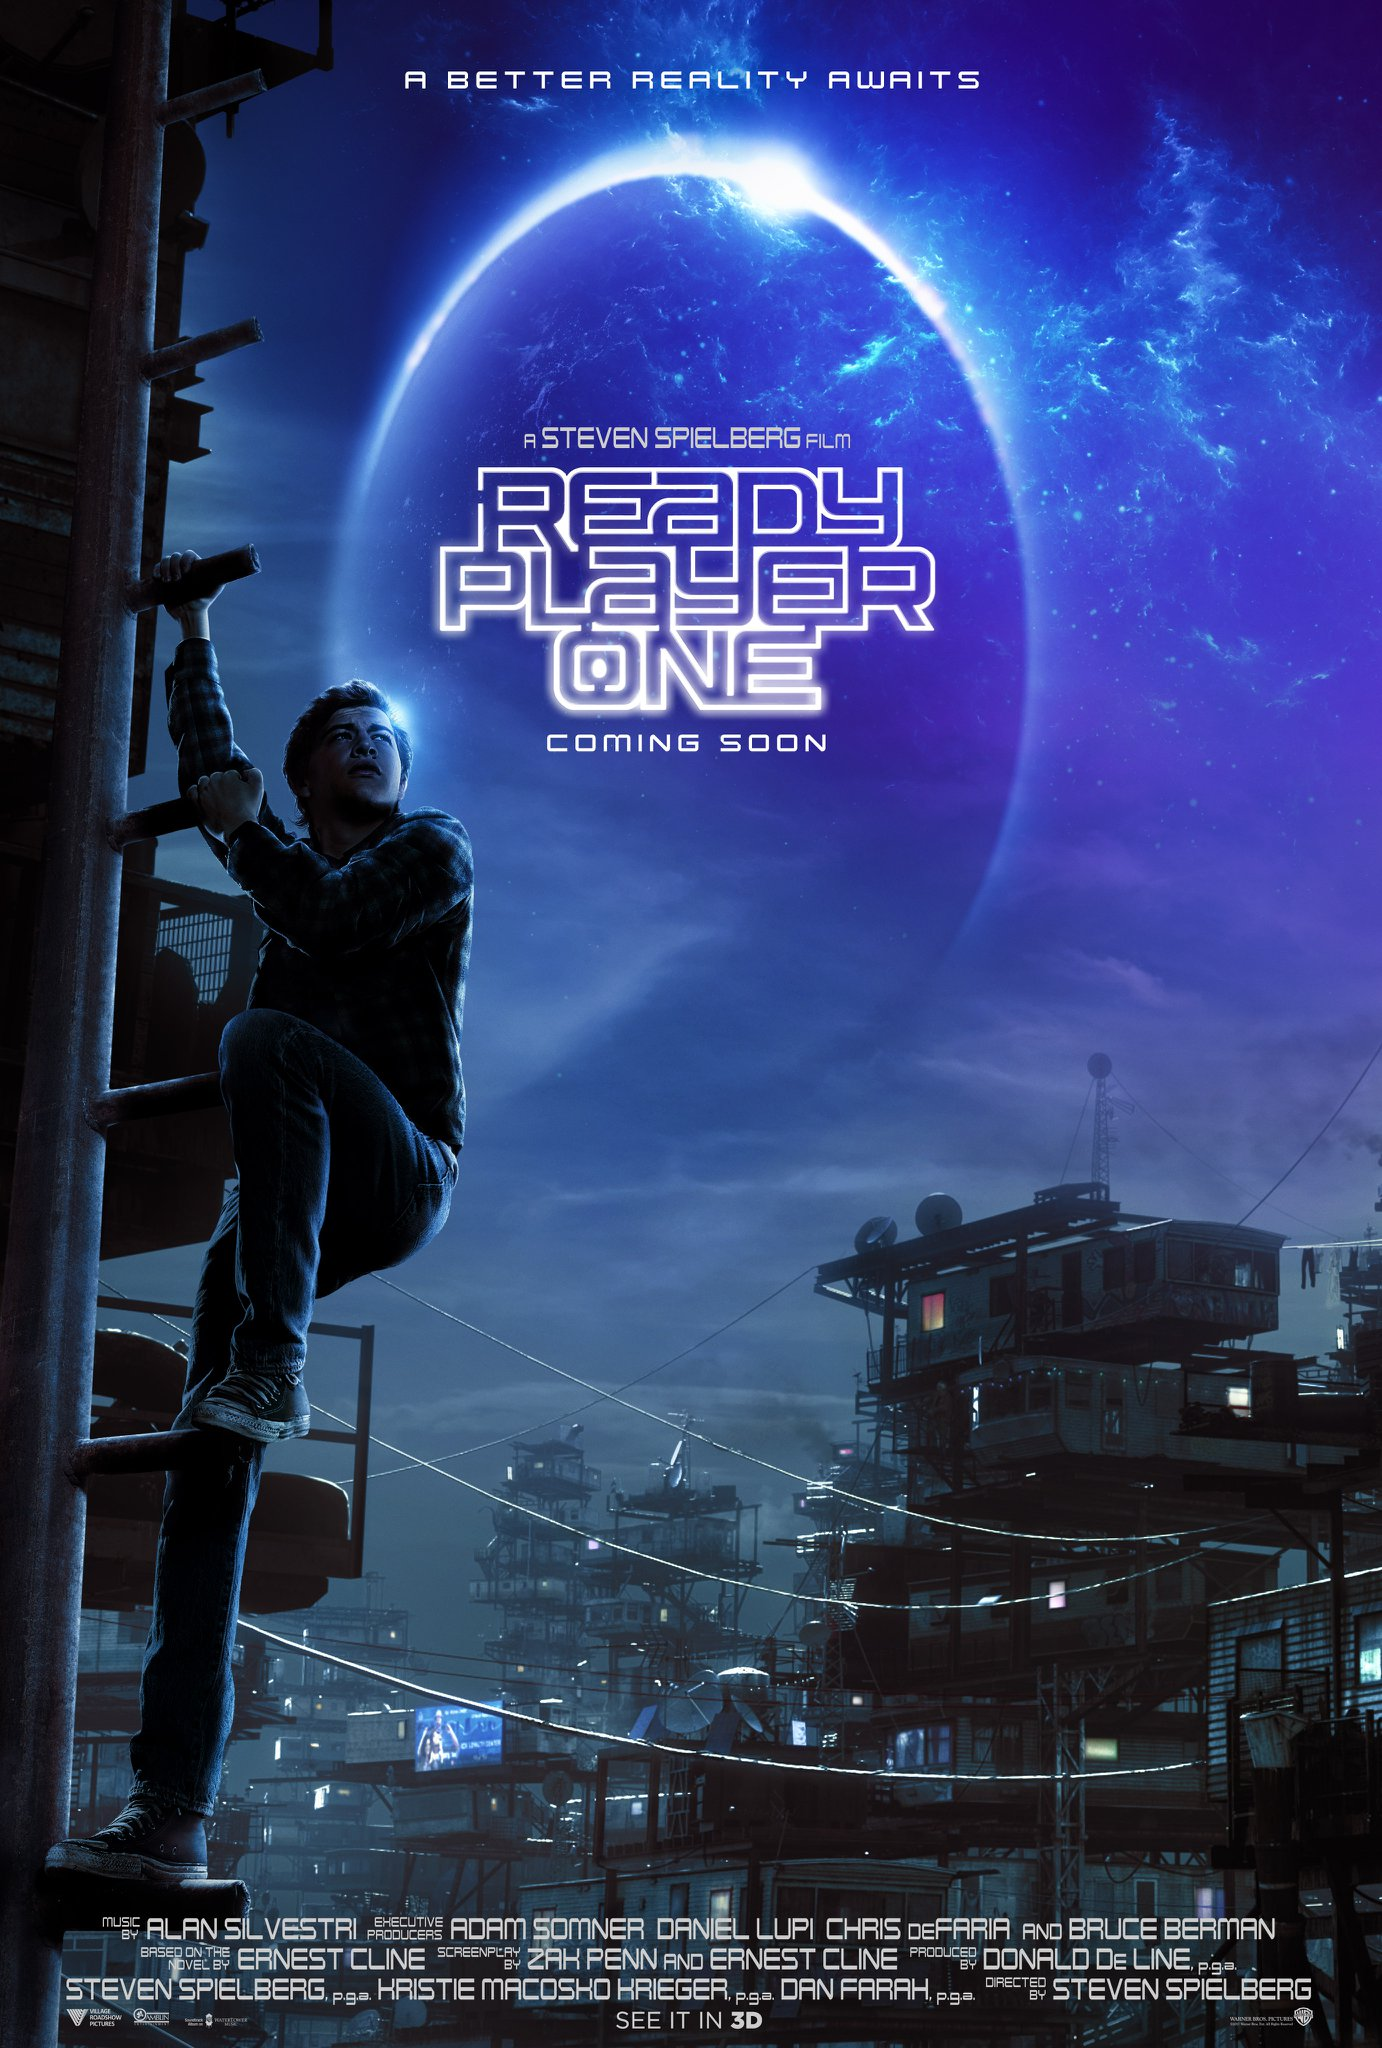 The Ready Player One poster.